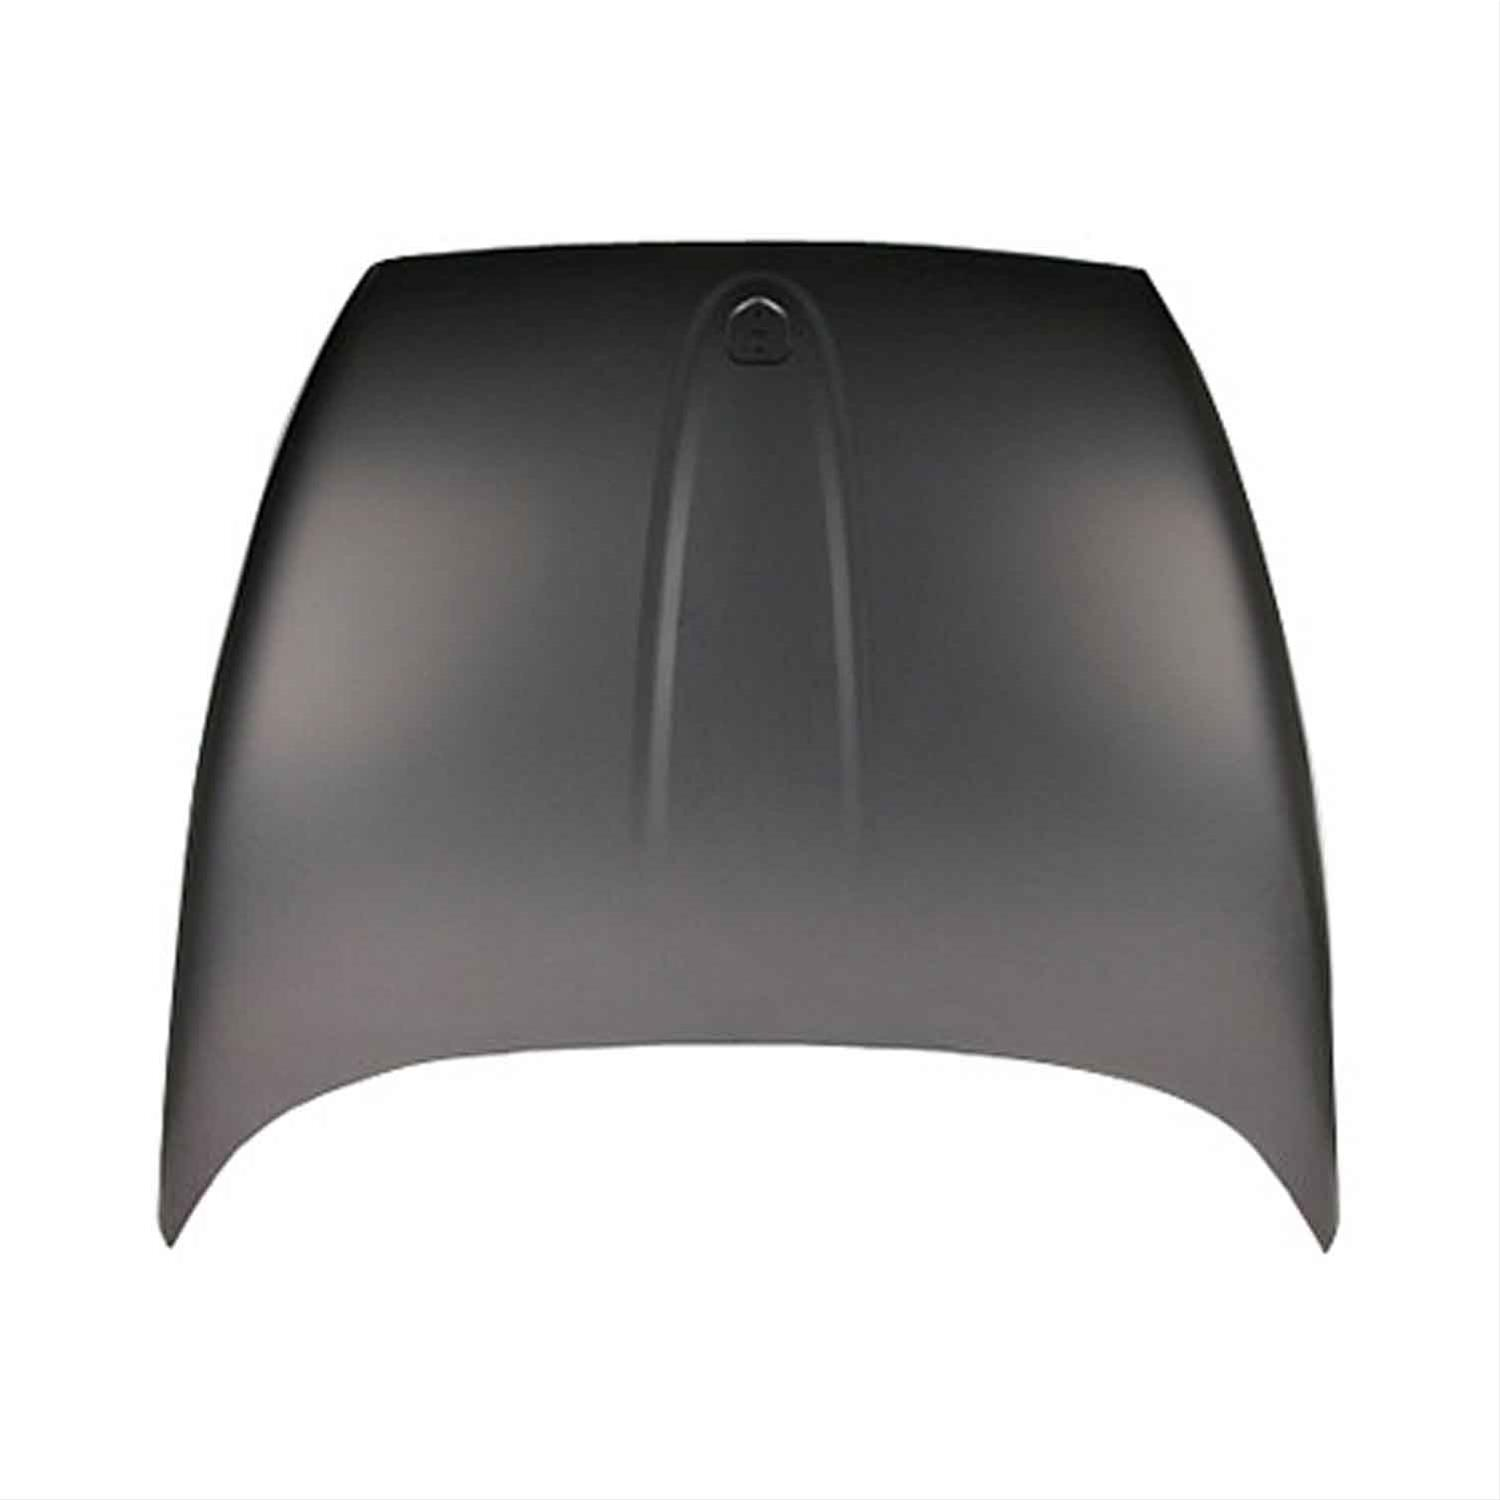 Steel OEM Replacement Hood 97-04 Dakota, 98-03 Durango